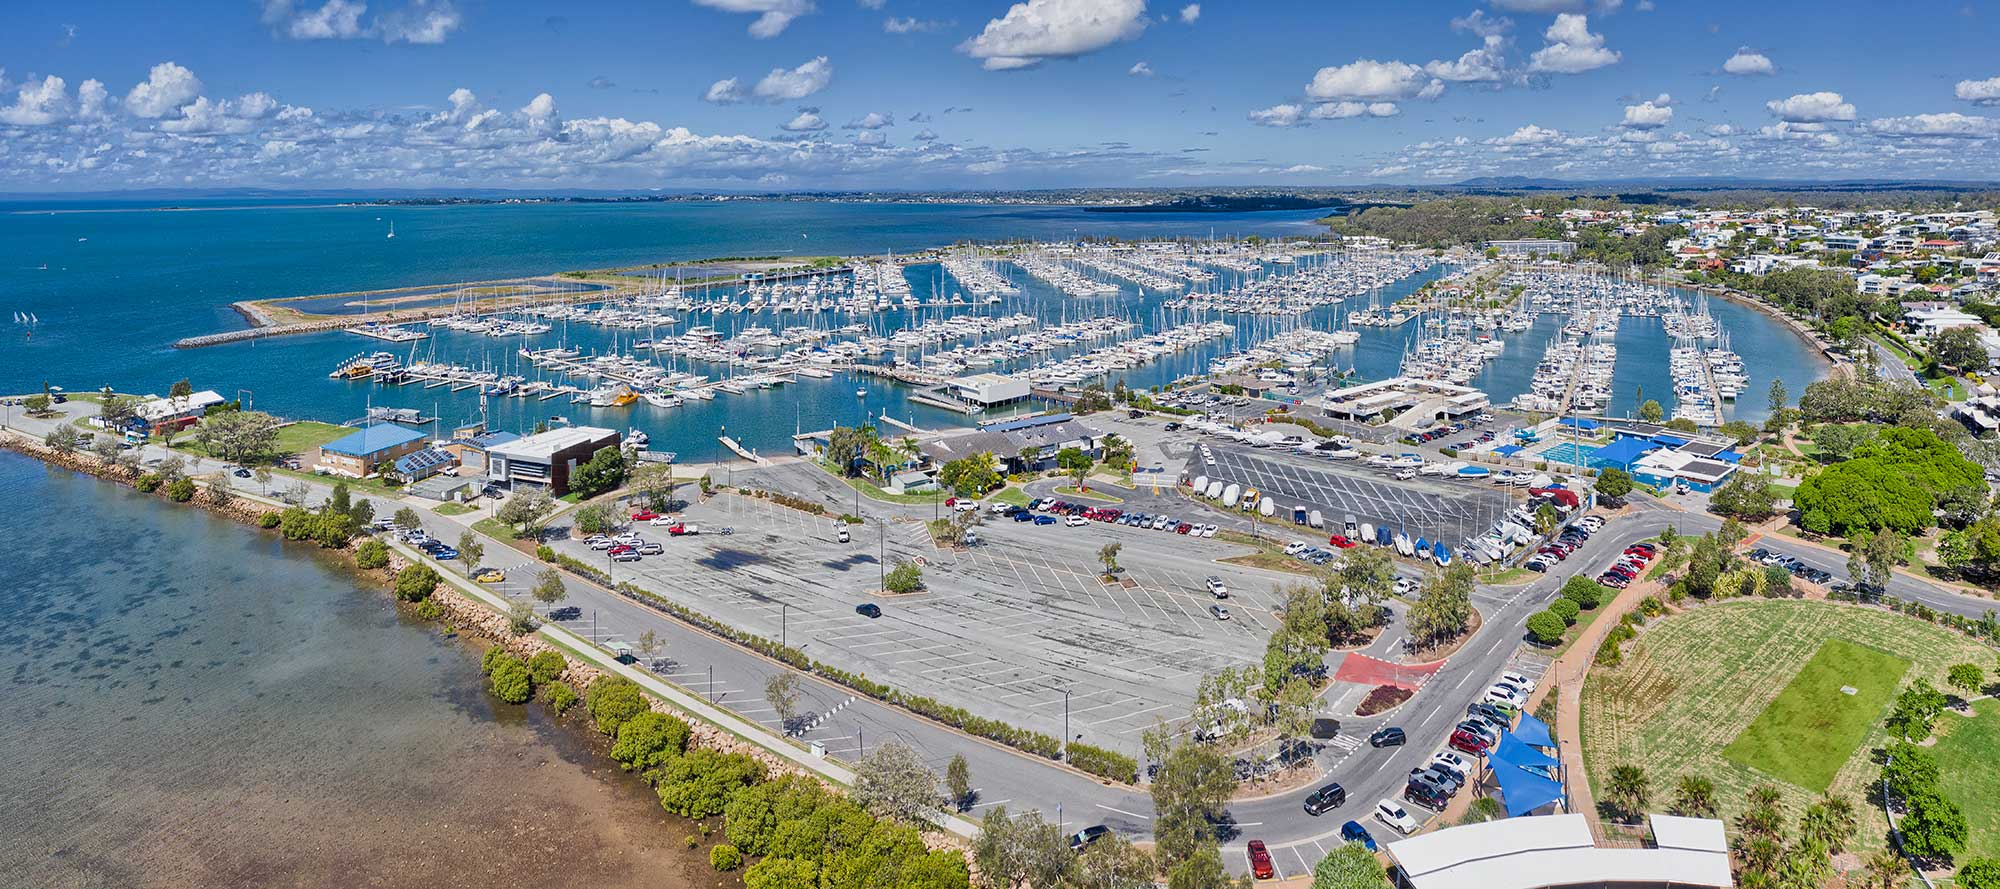 Drone photography Manly Boat Club and Marina with Redland Bay in the background